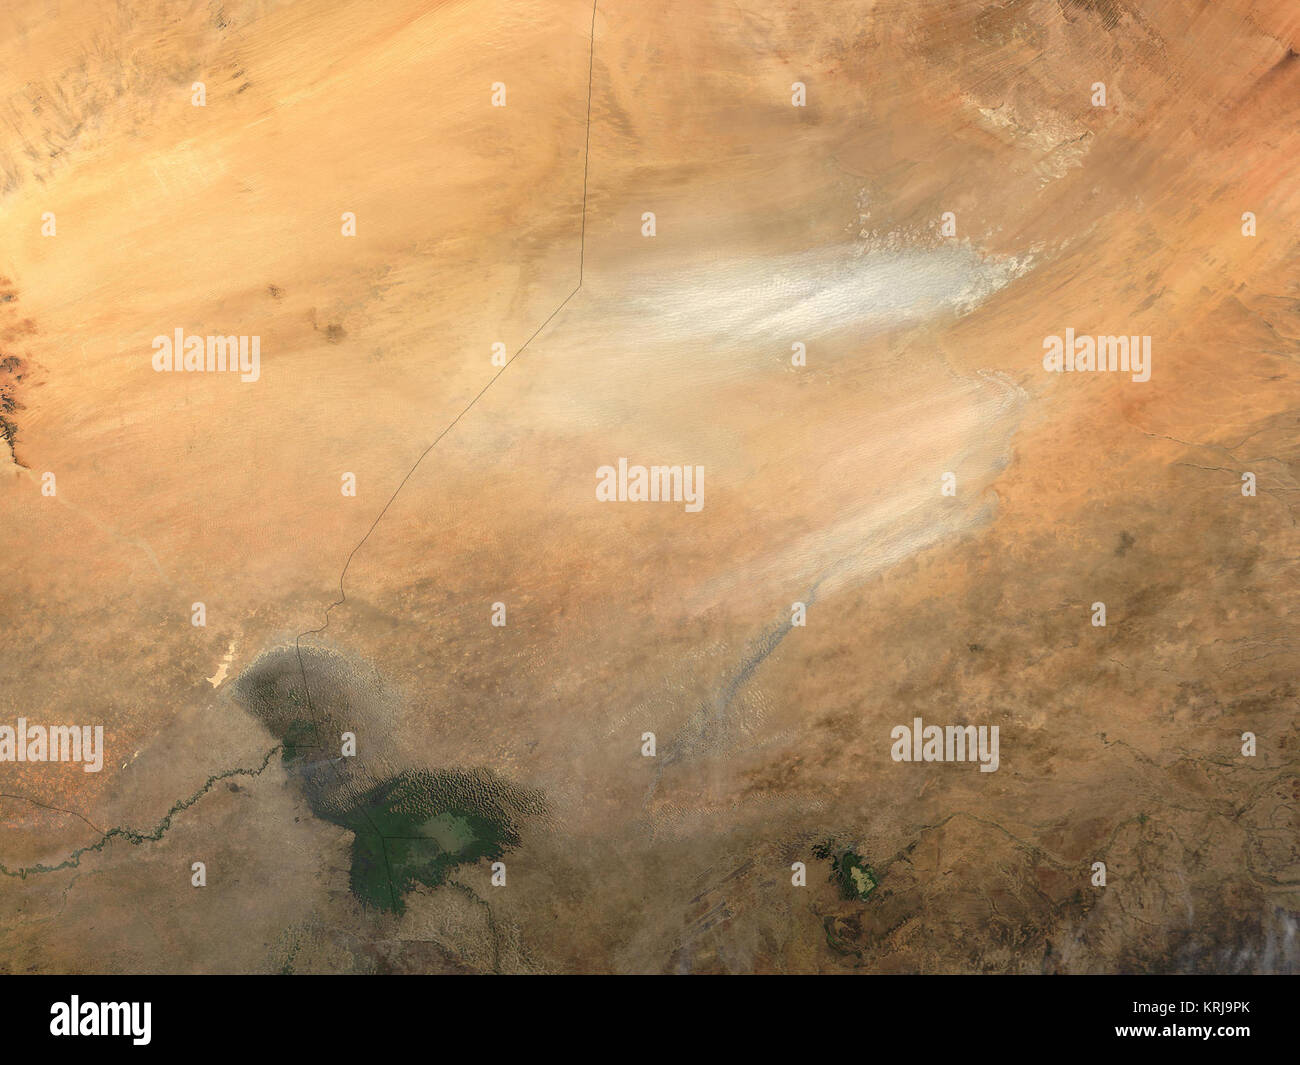 Dust from the Bodele depression in Chad, Africa (image right), is blowing across the Lake Chad region in this  modis.gsfc.nasa.gov - Stock Image